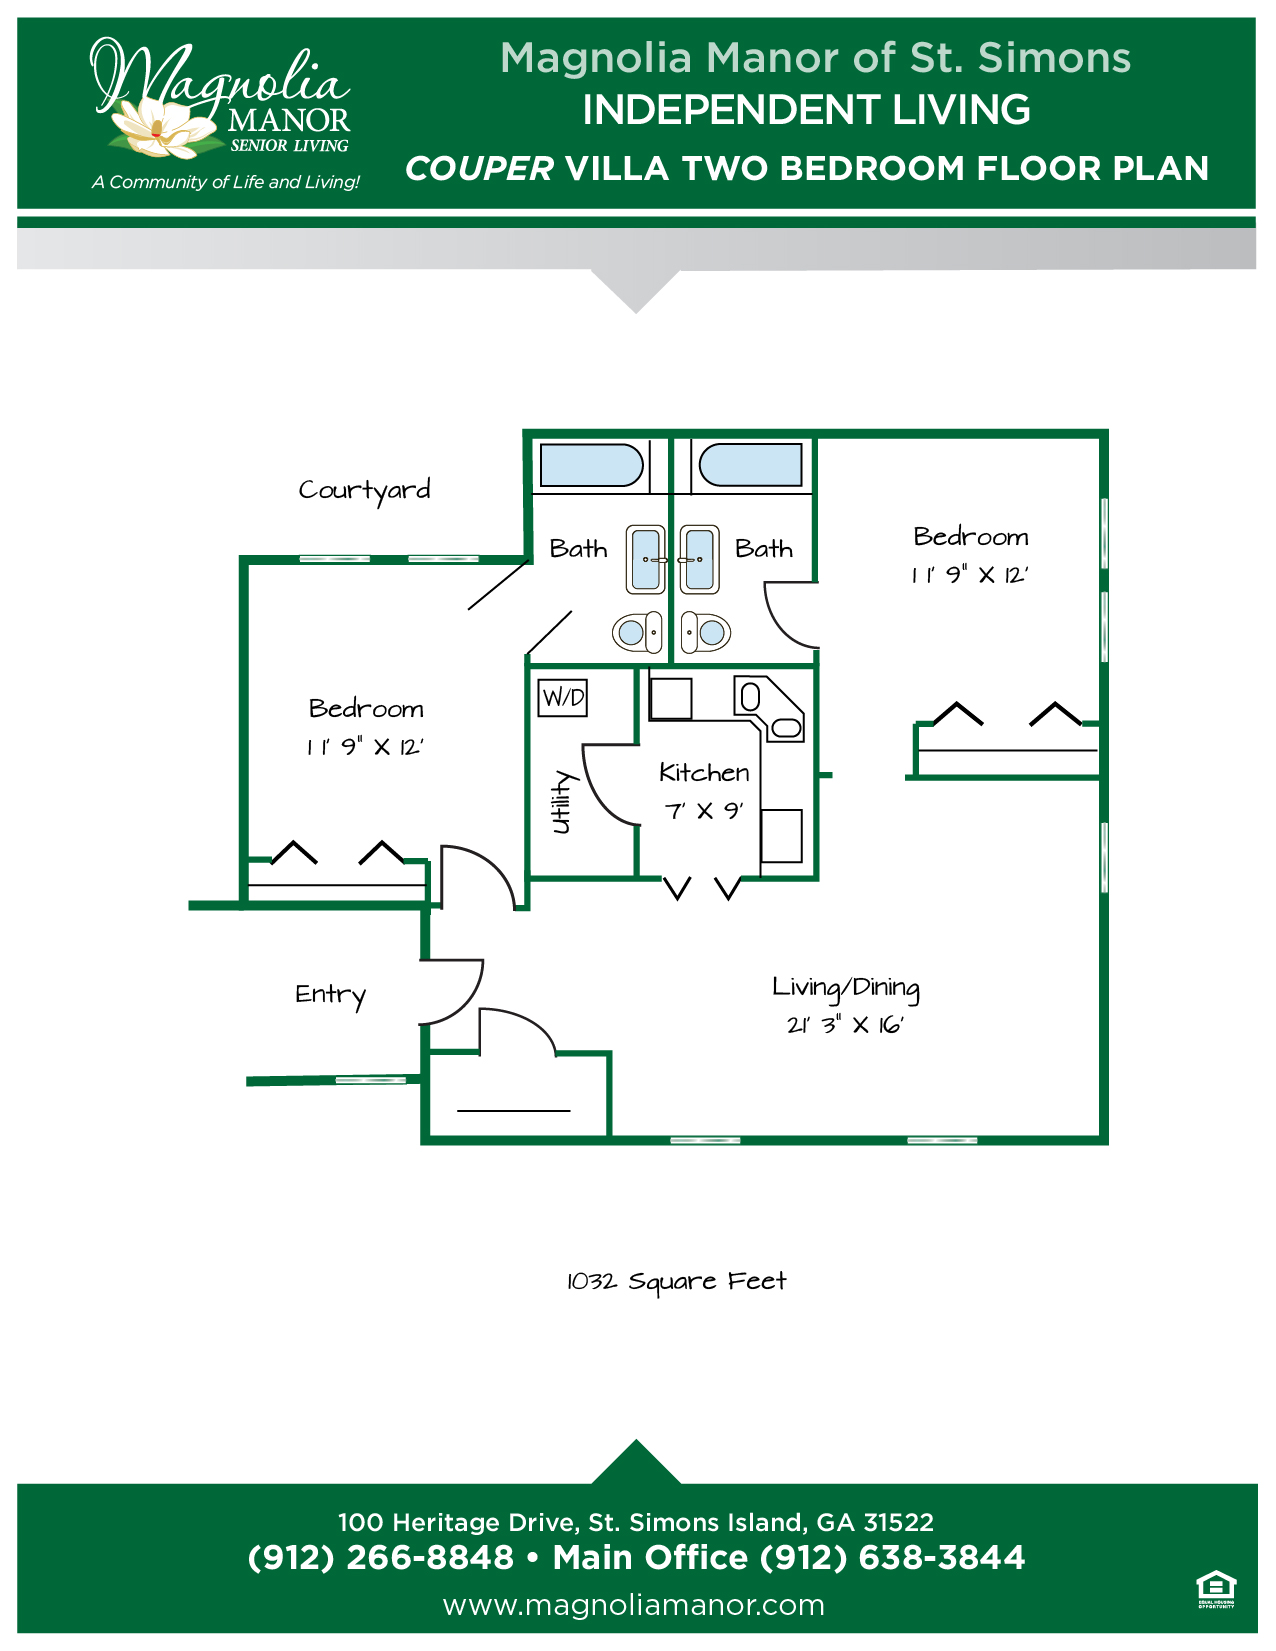 00344 St Simons IL COUPER VILLAS Floor Plans 2019-01